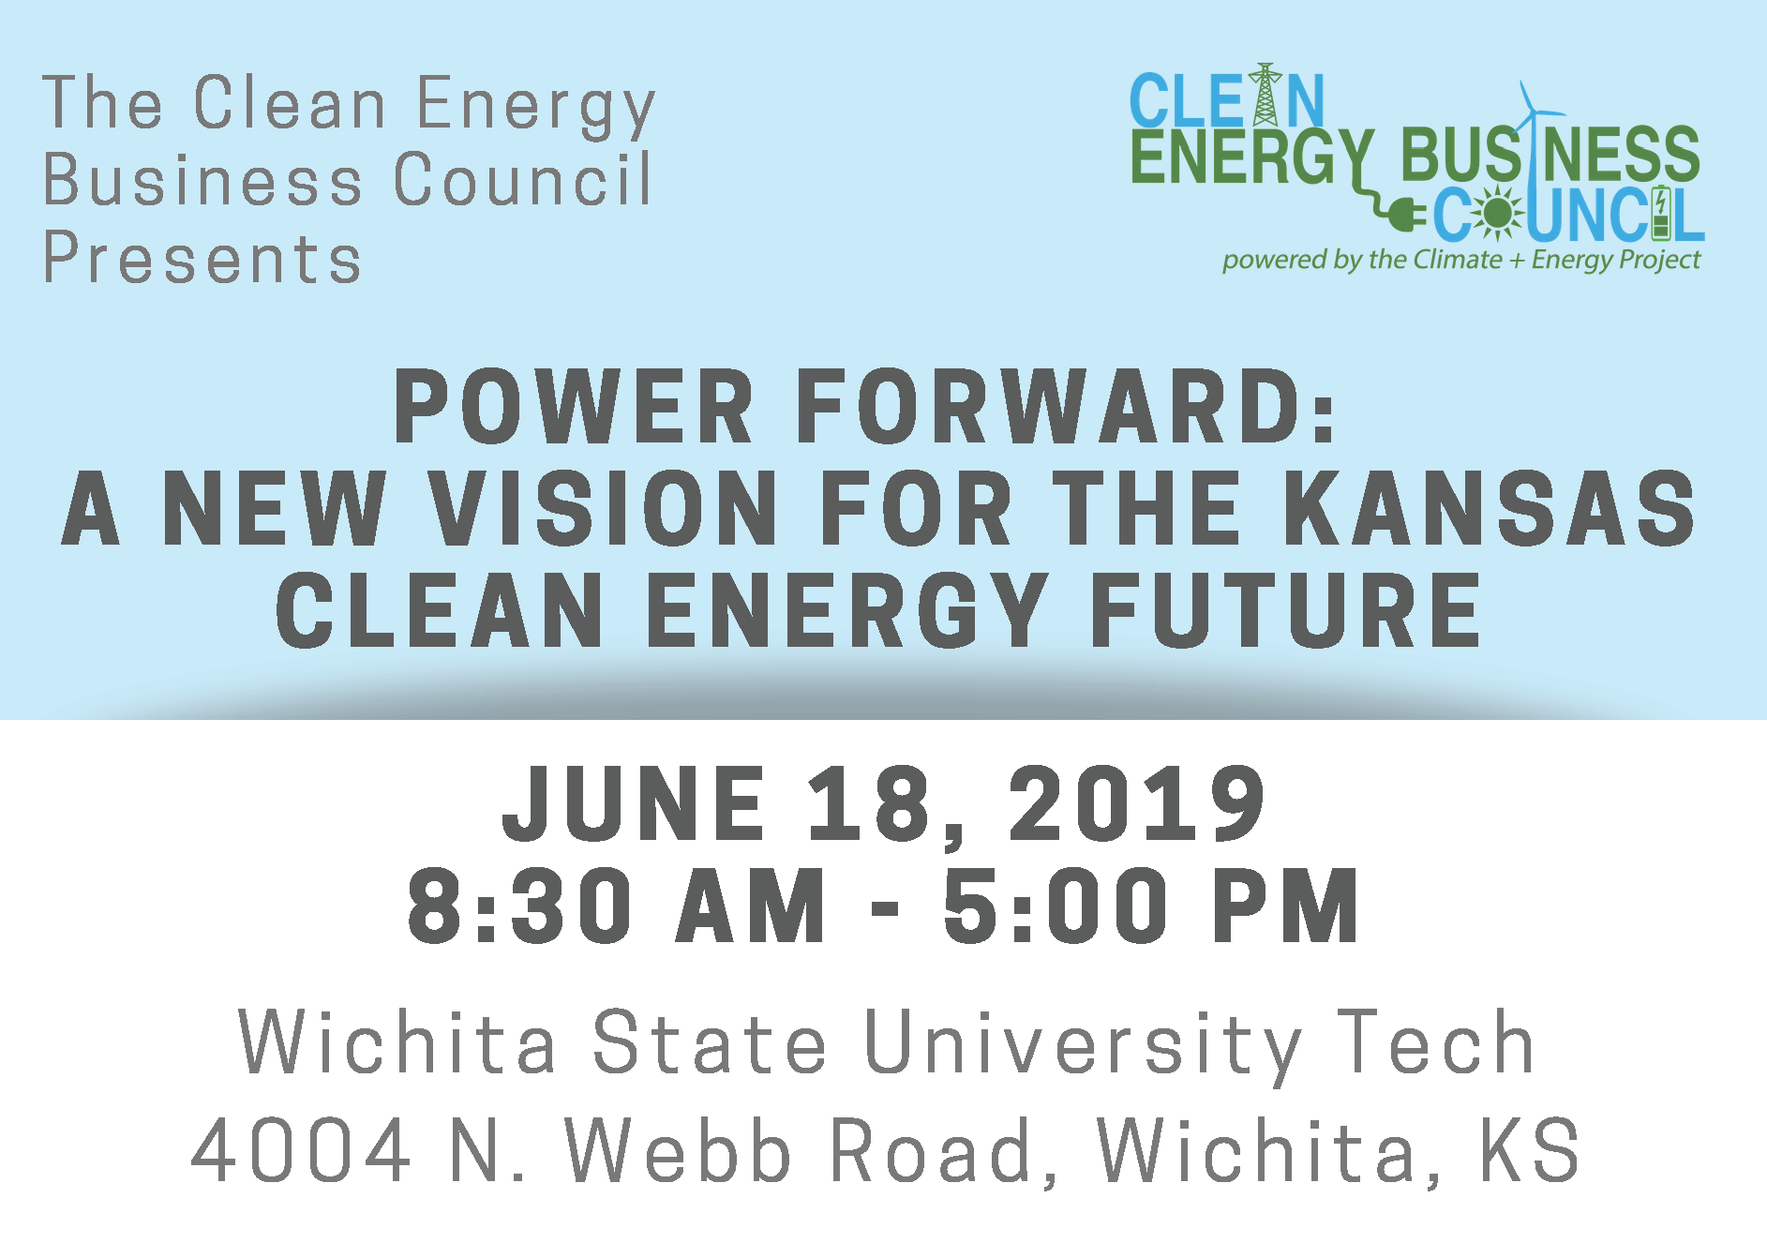 Power Forward: A New Vision for the Kansas Clean Energy Future image